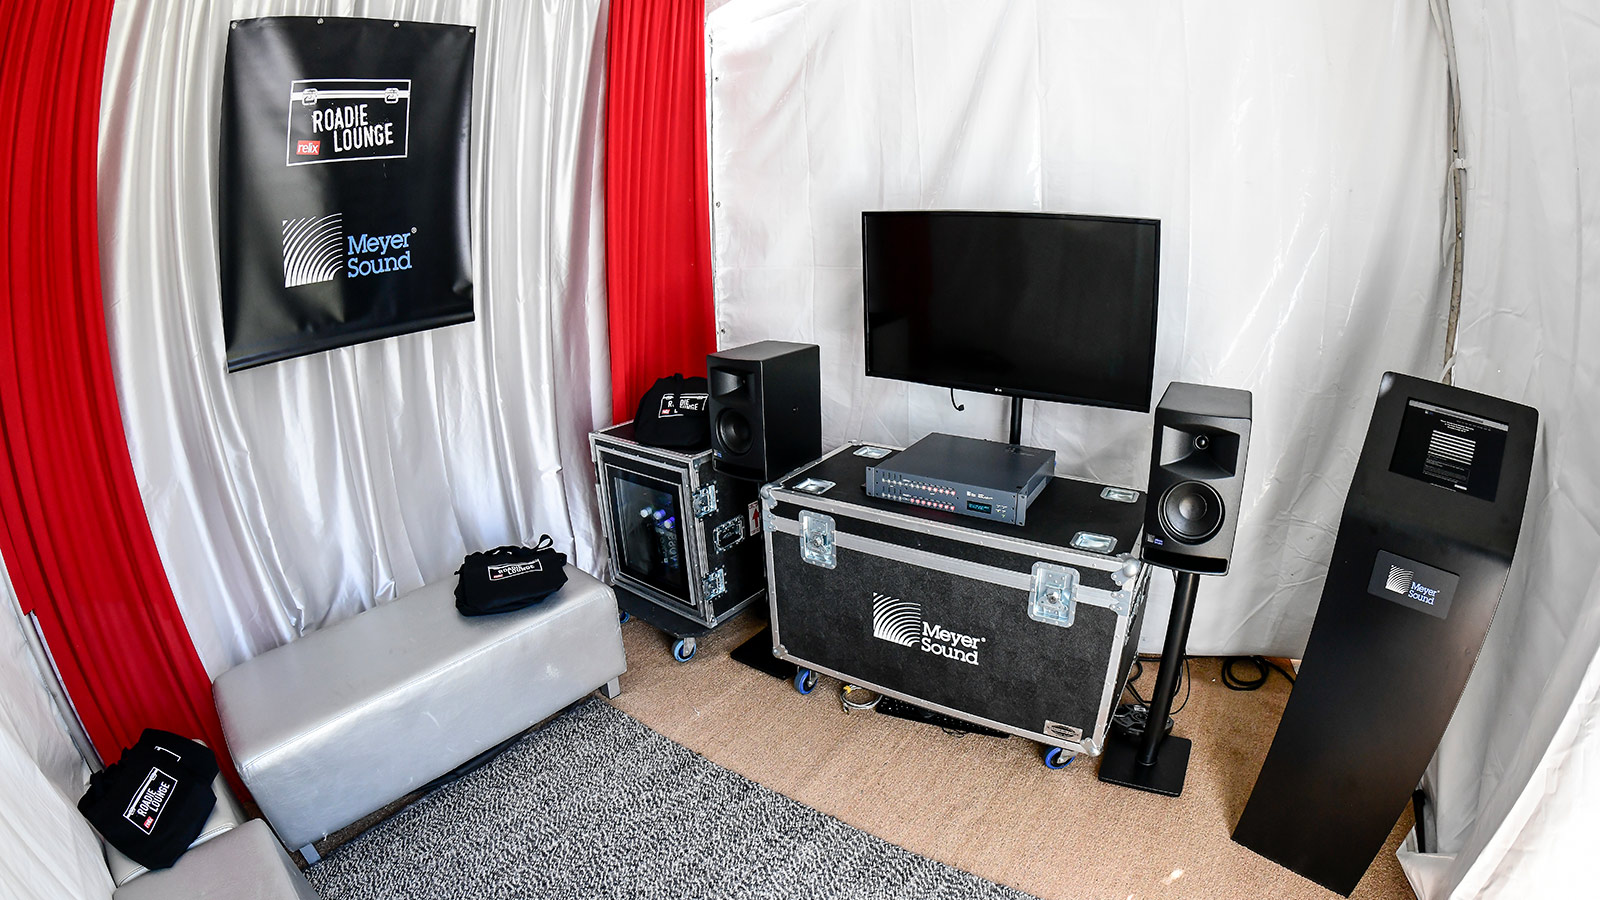 Relix Roadie Lounge at Outside Lands 2019